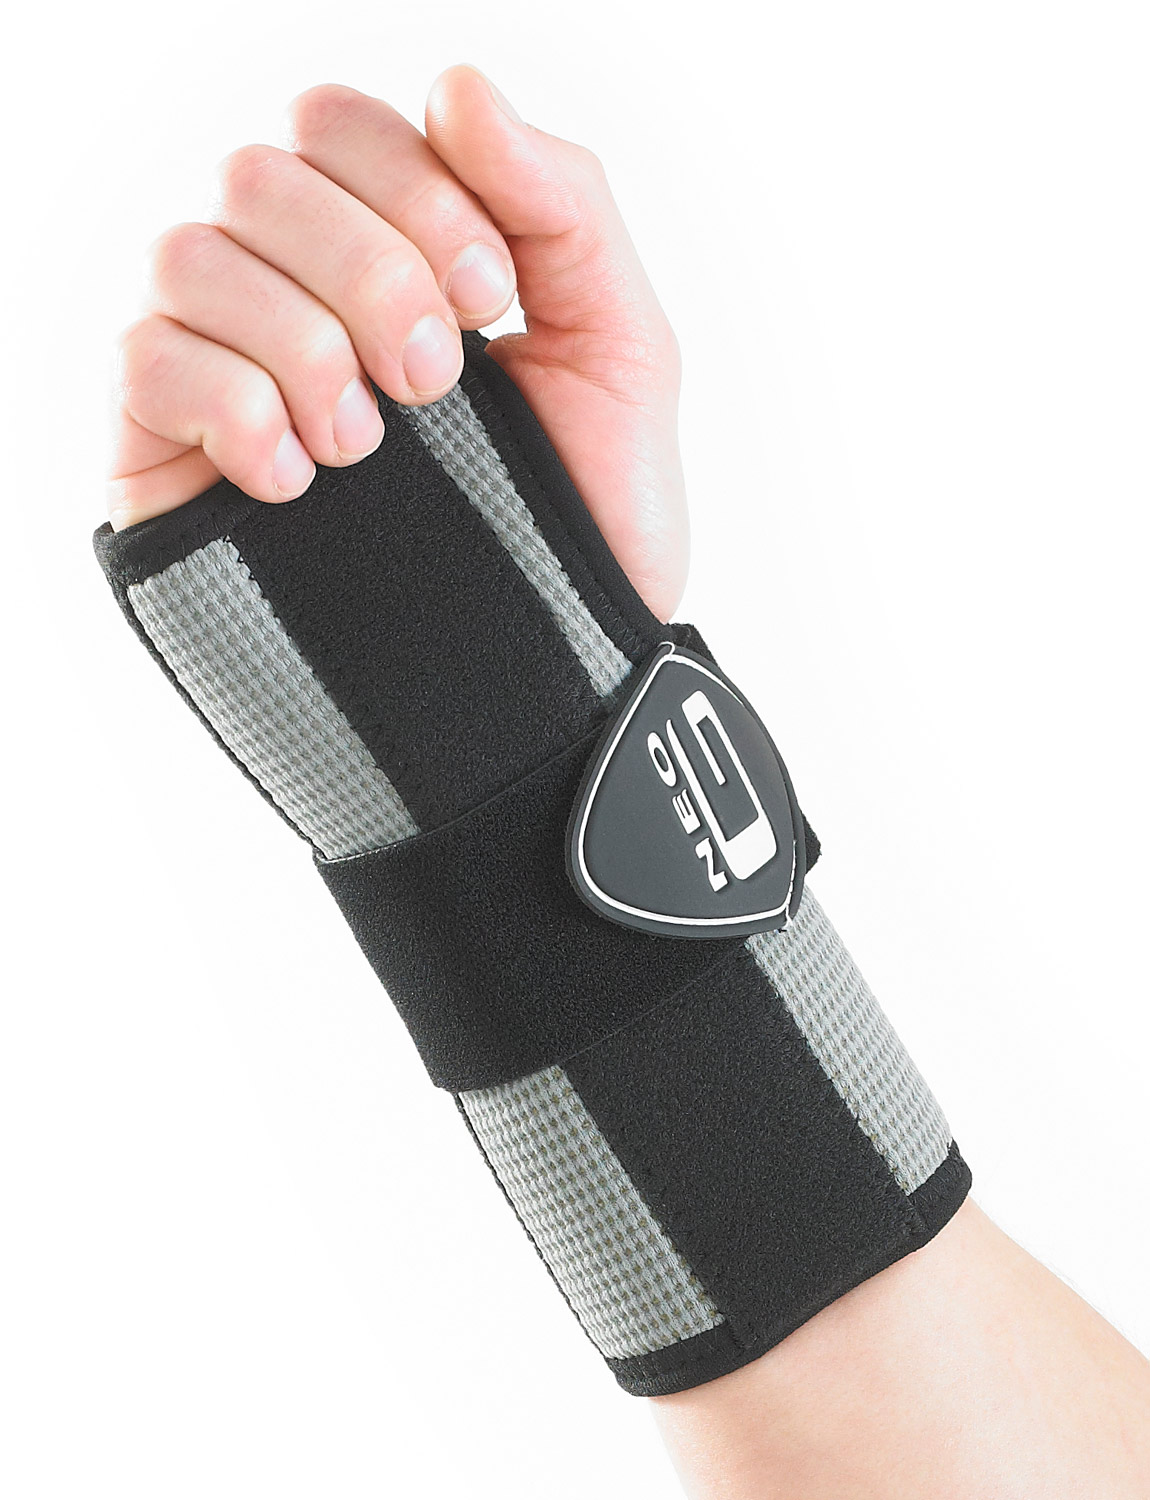 165 - RX WRIST BRACE  Constructed from breathable fabric and features a removable metal splint to allow variable stabilization of the wrist and hand. The adjustable strap provides additional compression around the wrist and/or hand if needed, which can help encourage correct alignment of the carpal bones and help reduce inflammation: useful in the management of carpal tunnel syndrome.